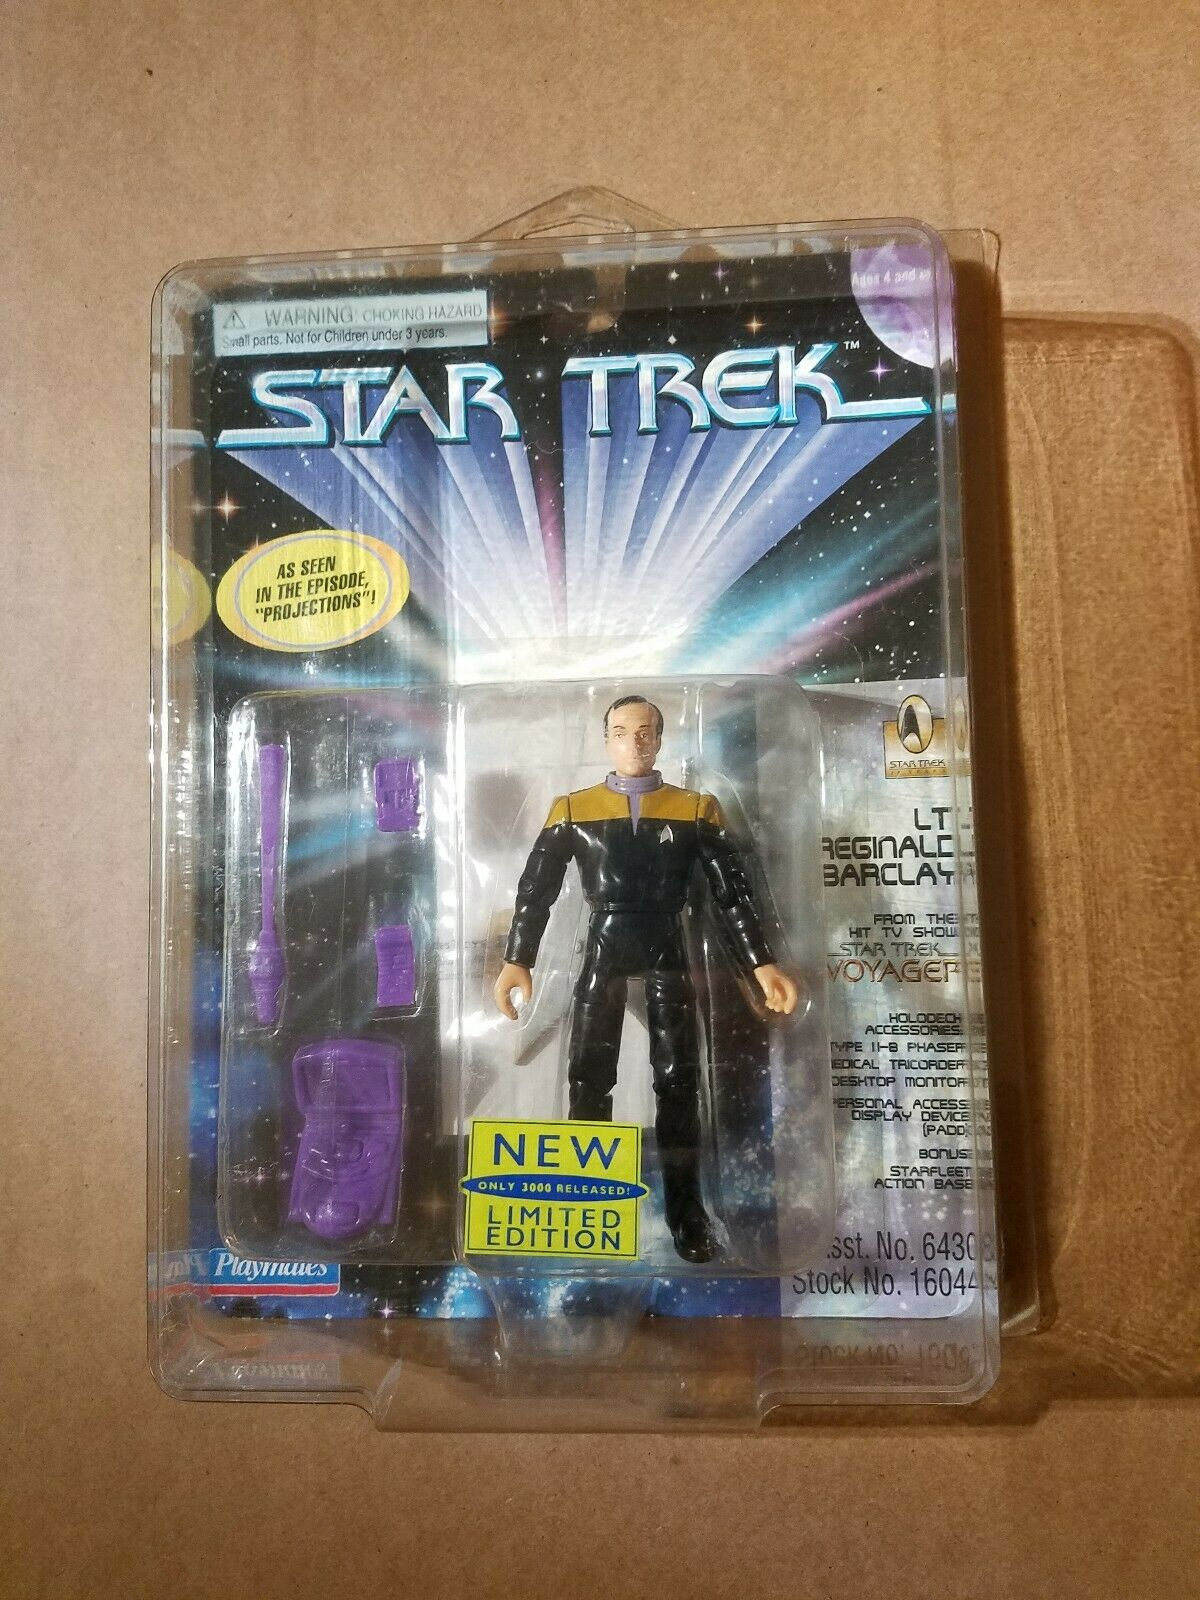 Star Trek Lt. Reginald Barclay EXCLUSIVE LIMITED EDITION. Only 3000 Made